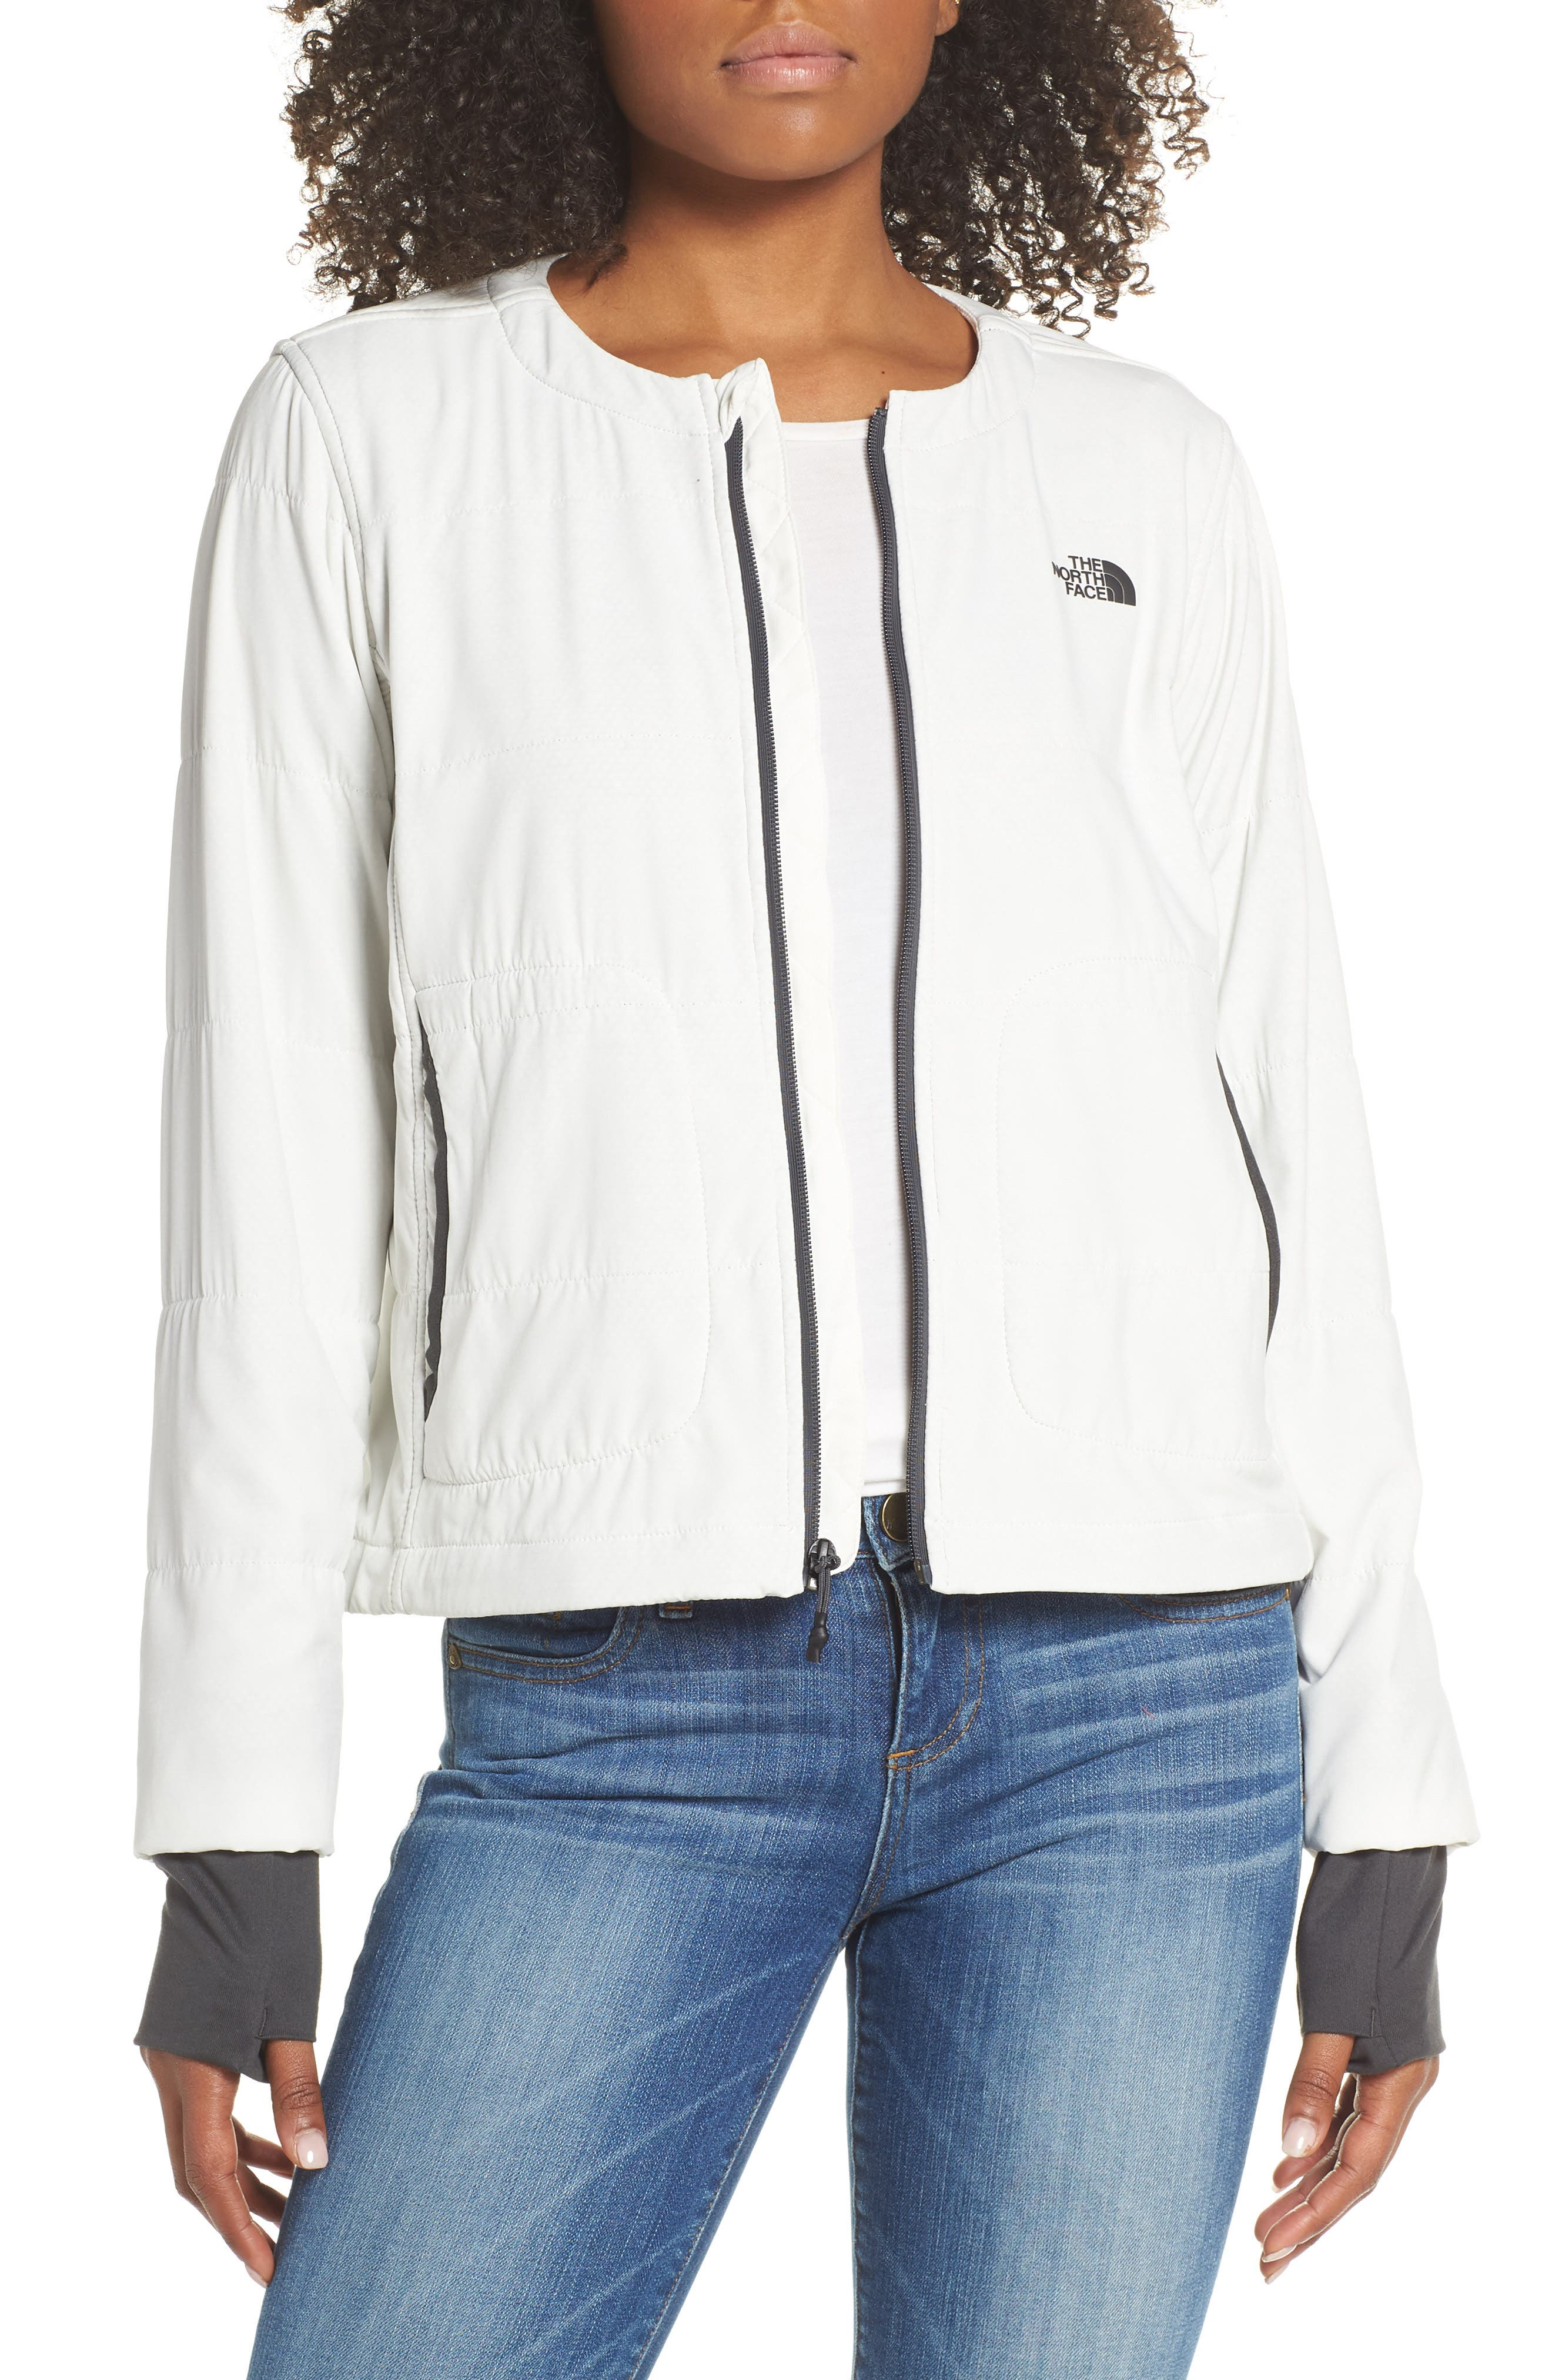 THE NORTH FACE, Mountain Insulated Collarless Zip Jacket, Main thumbnail 1, color, 050